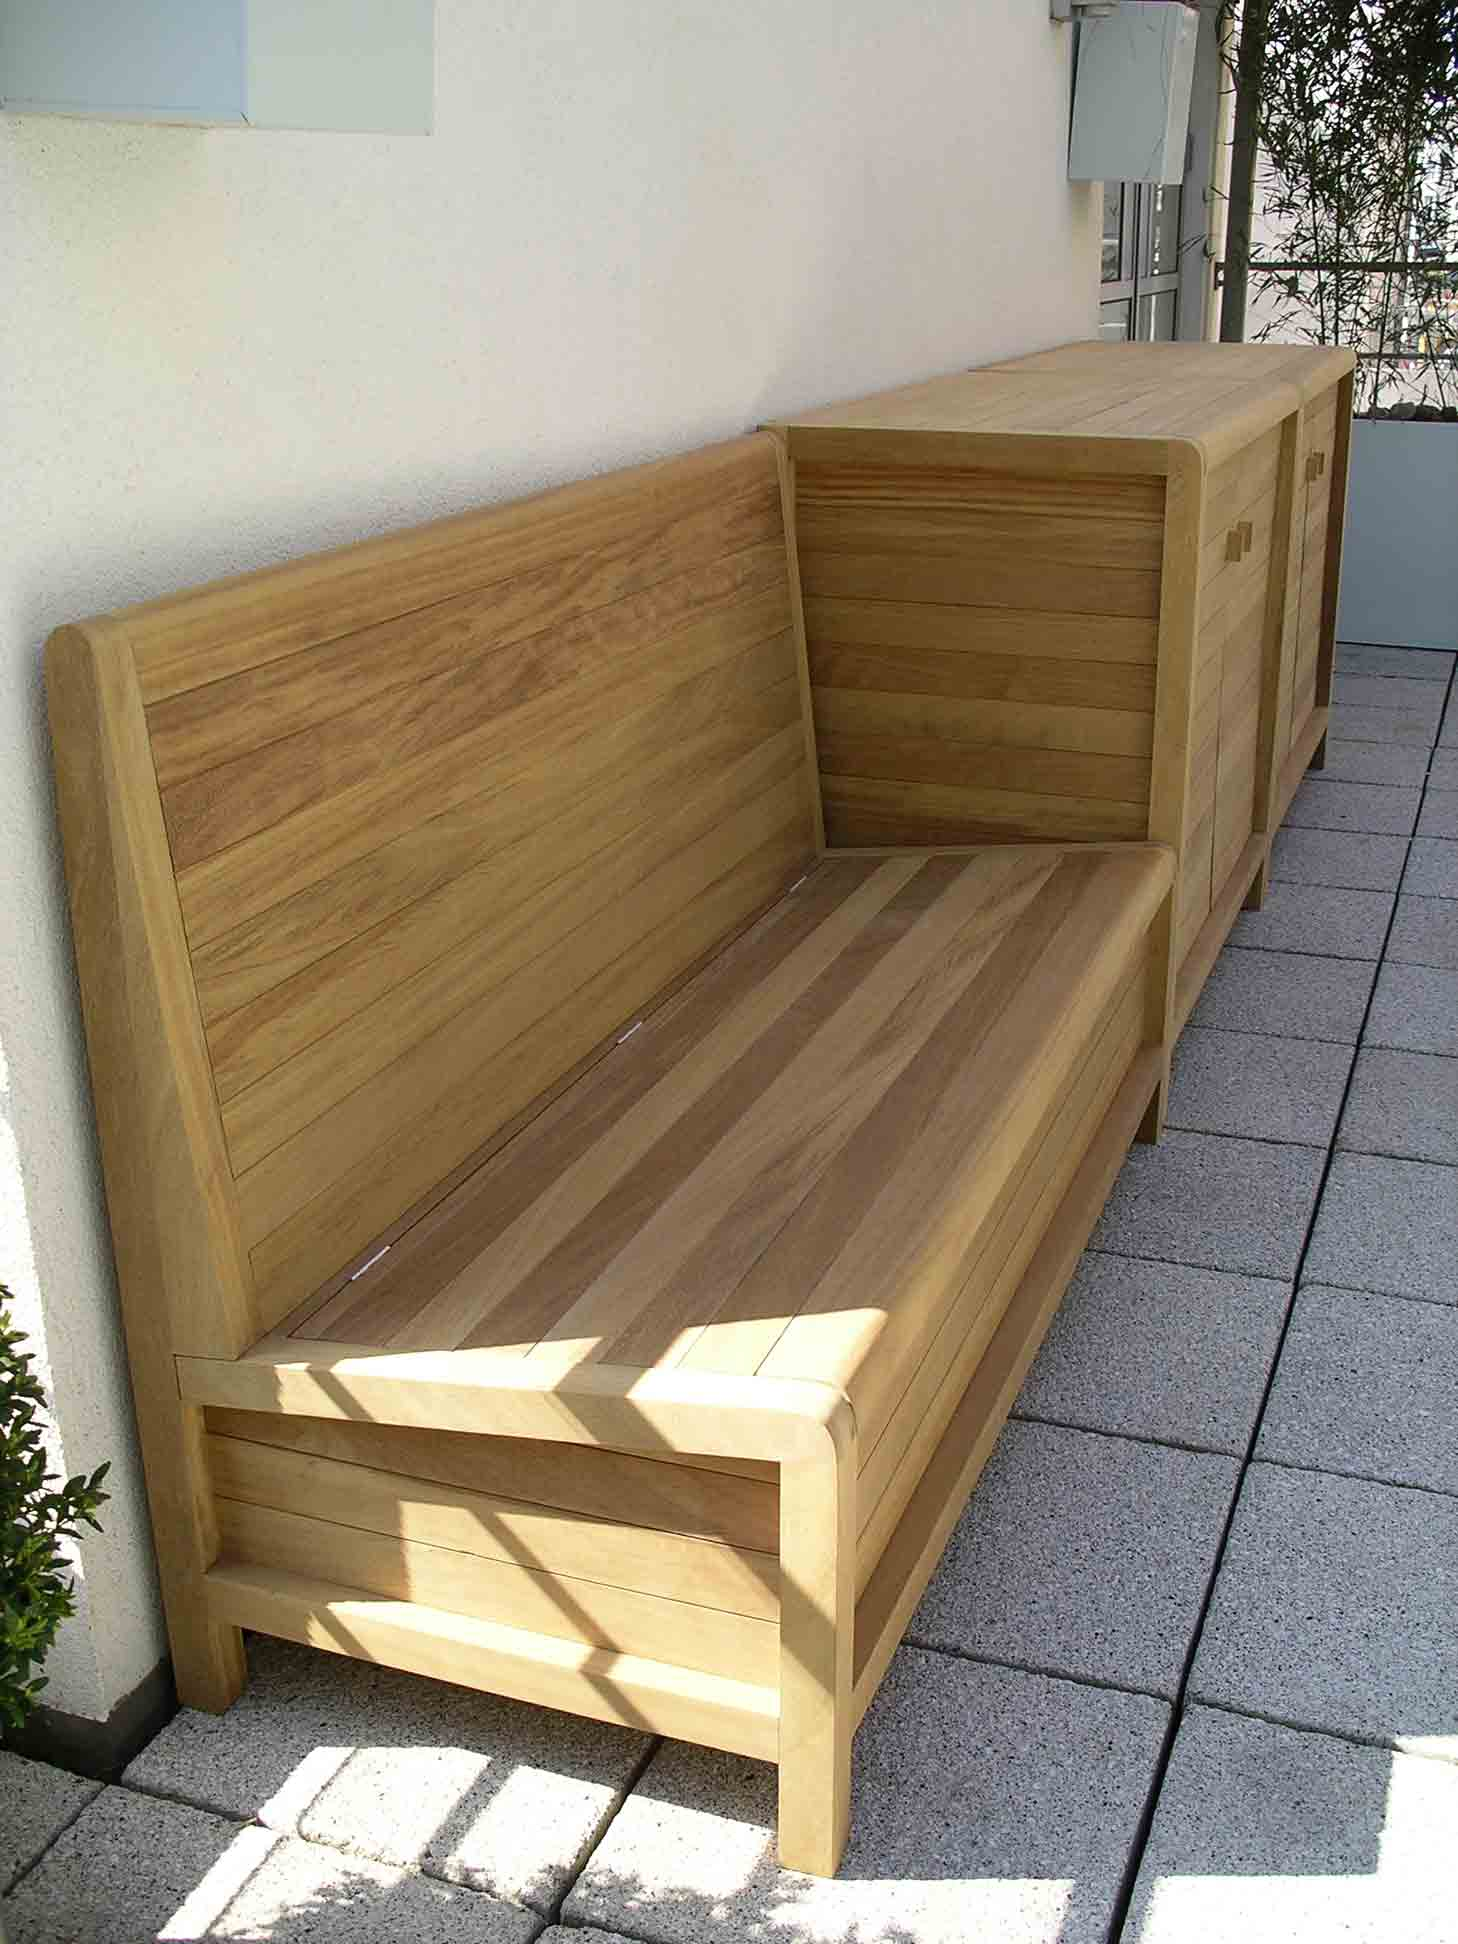 hardwood weather proof garden furniture bespoke made